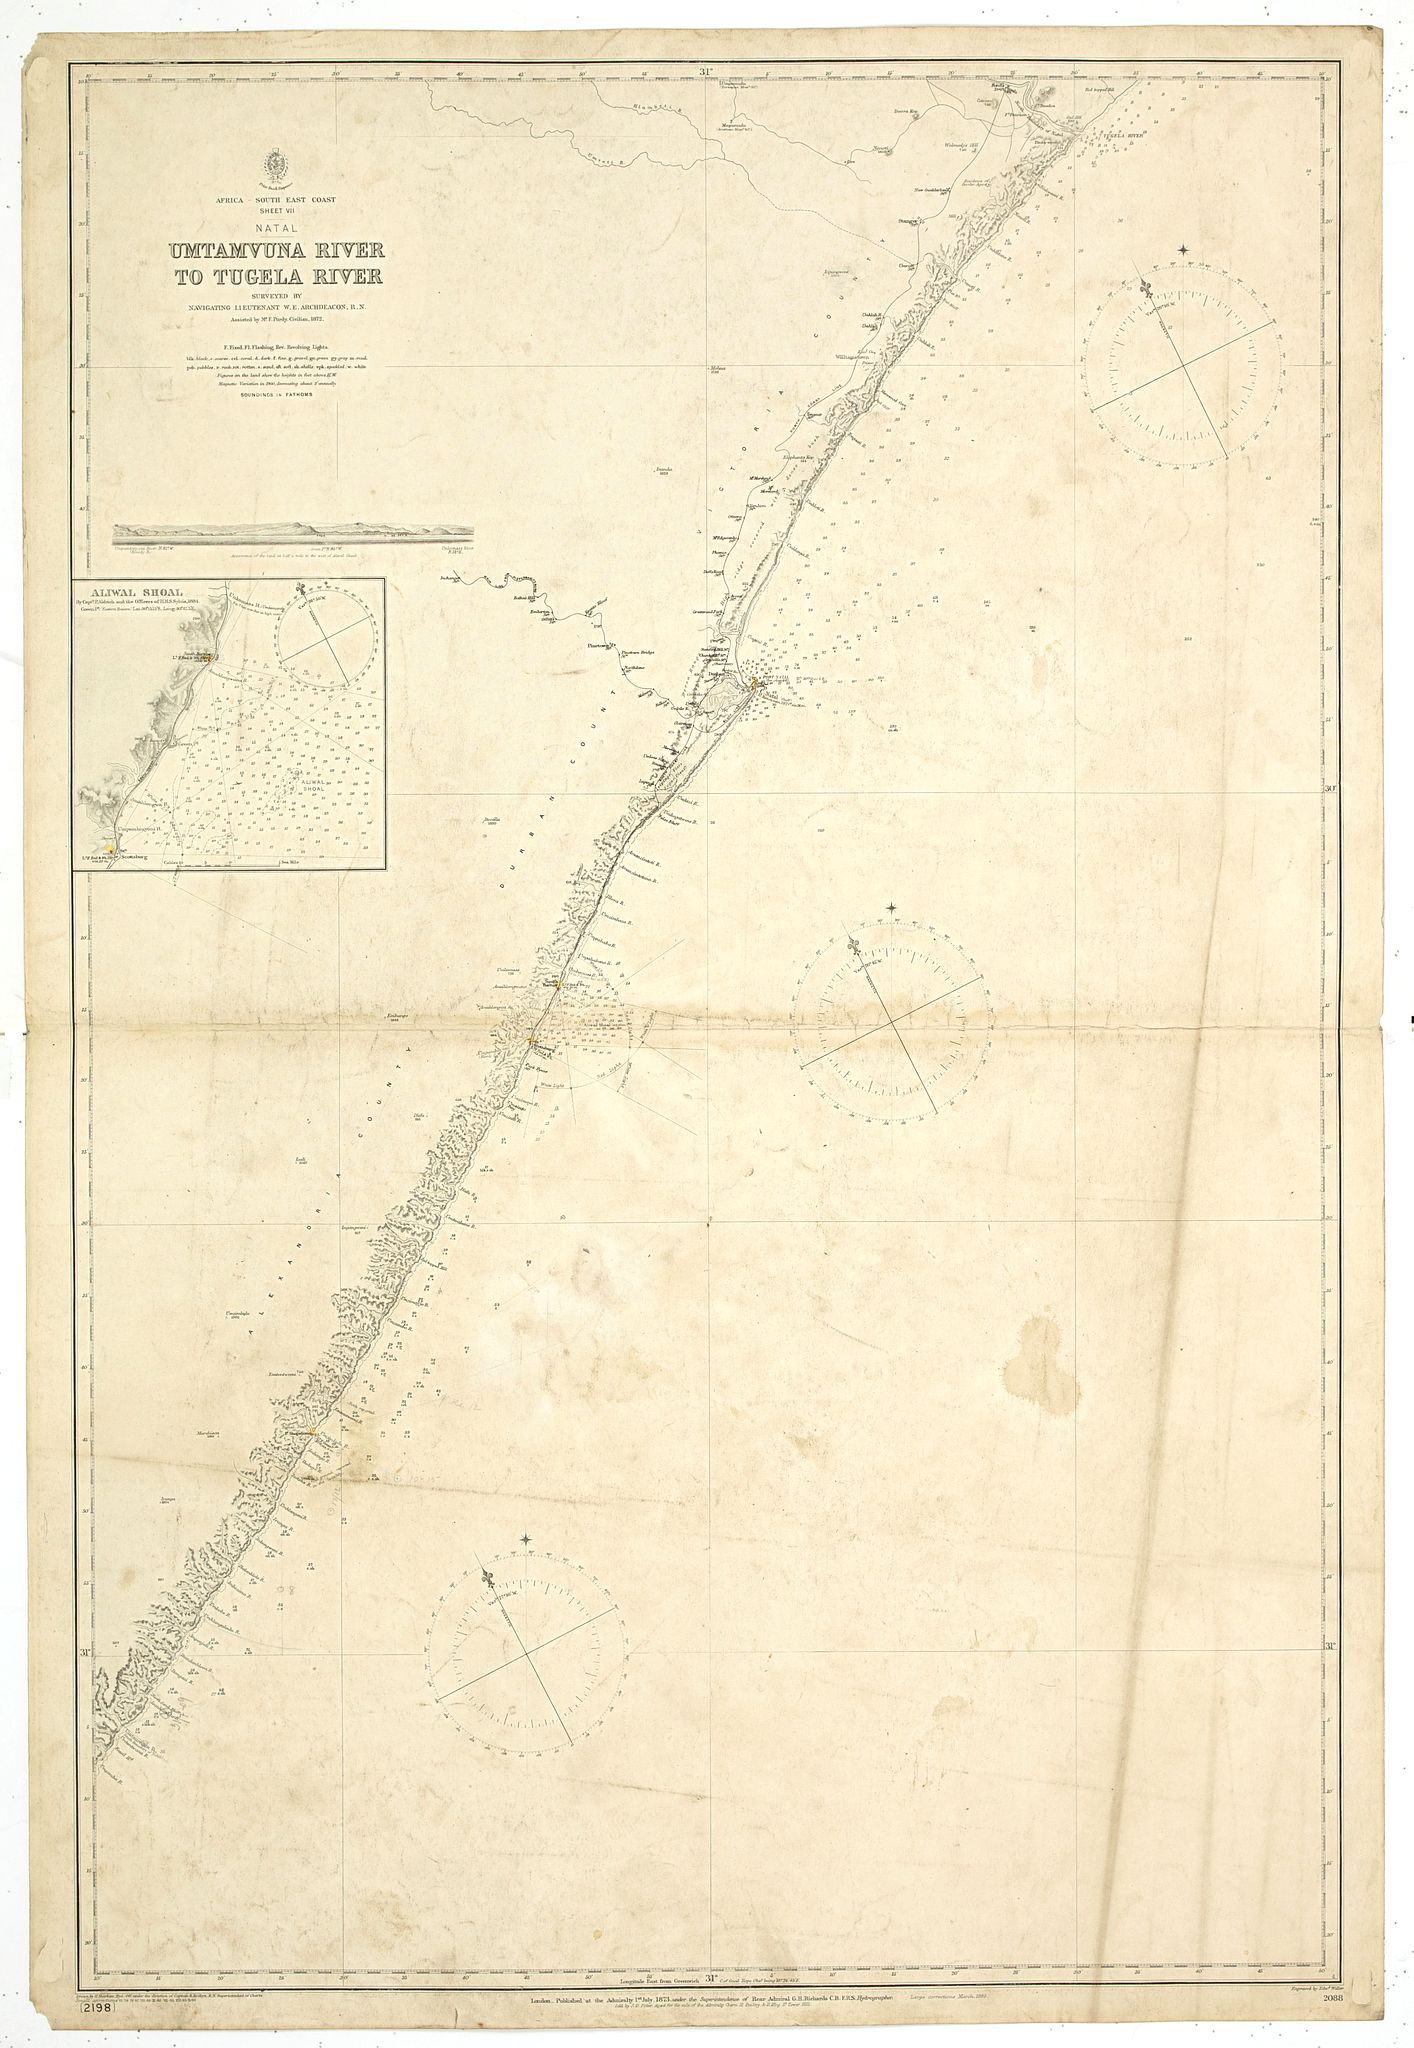 BRITISH ADMIRALTY CHART. -  Africa south east coast Sheet VII. Umtavuna River to Tugela River With two coastal profiles Surveyed by Navigating Lieutenant W.e. Archdeacon, R. N. Assisted by Mr. F. Purdy, Civilian, 1872…